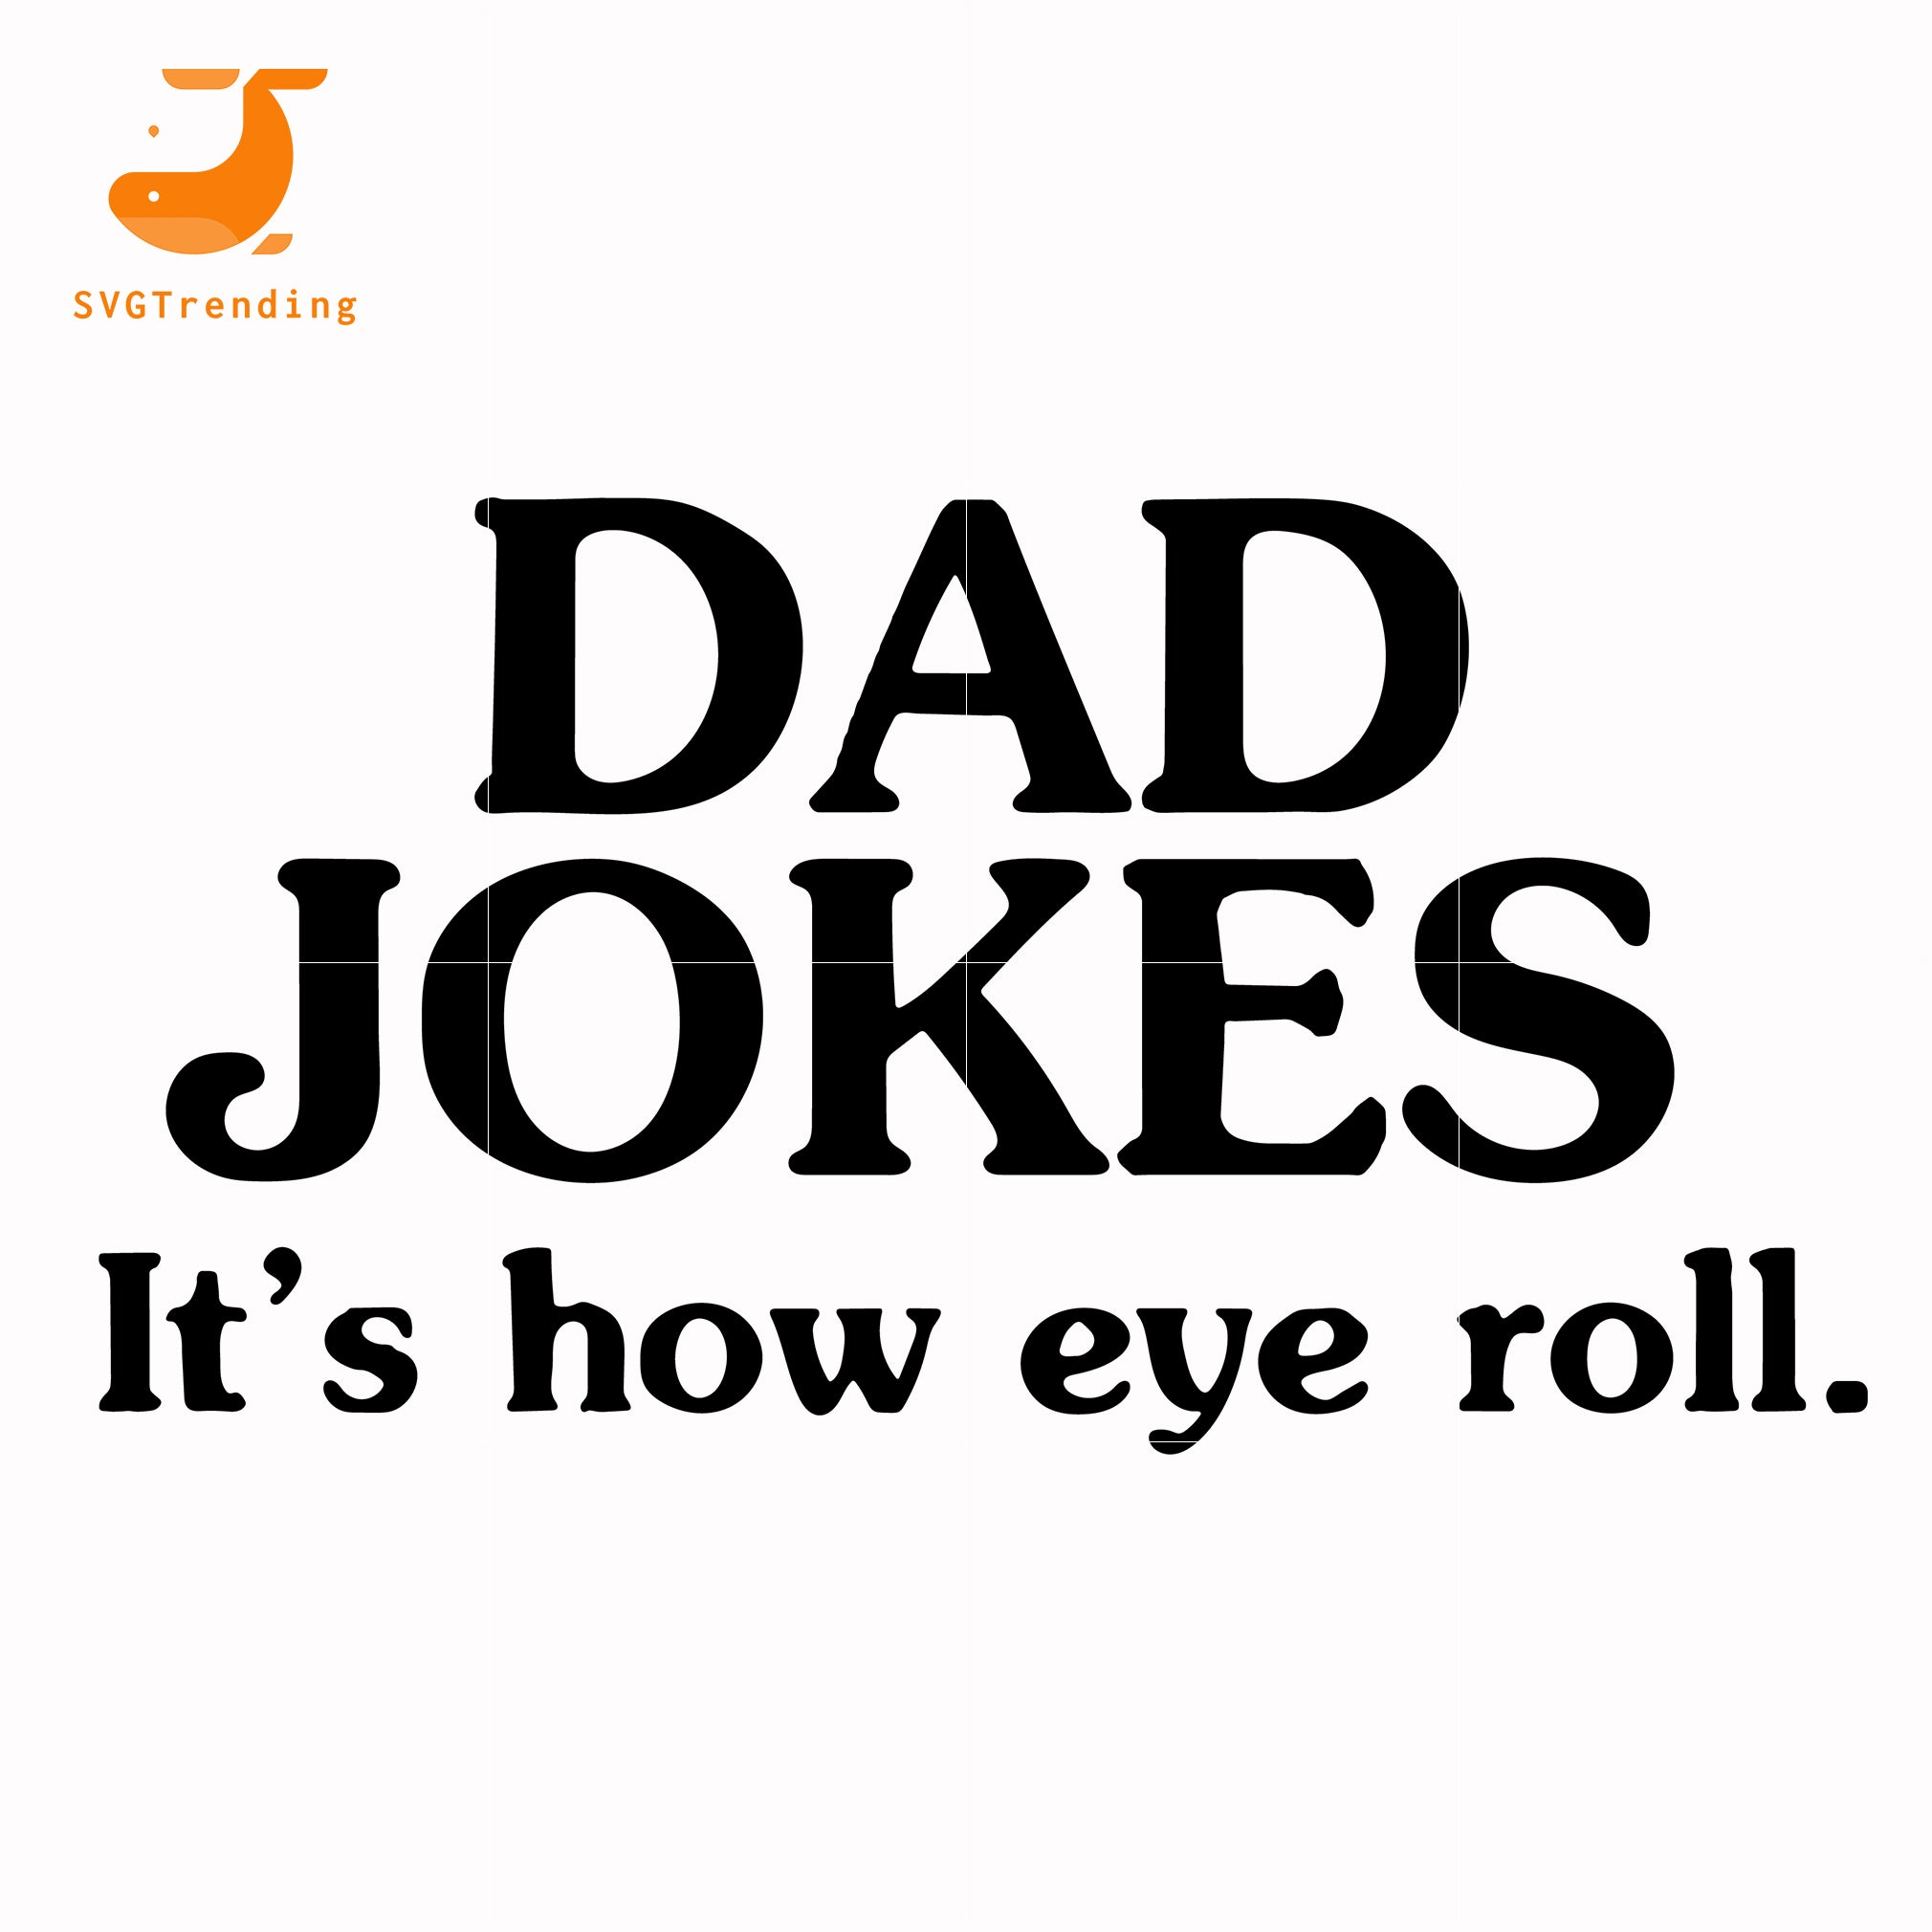 Dad jokes it's how eye roll svg, png, dxf, eps, digital file FTD121